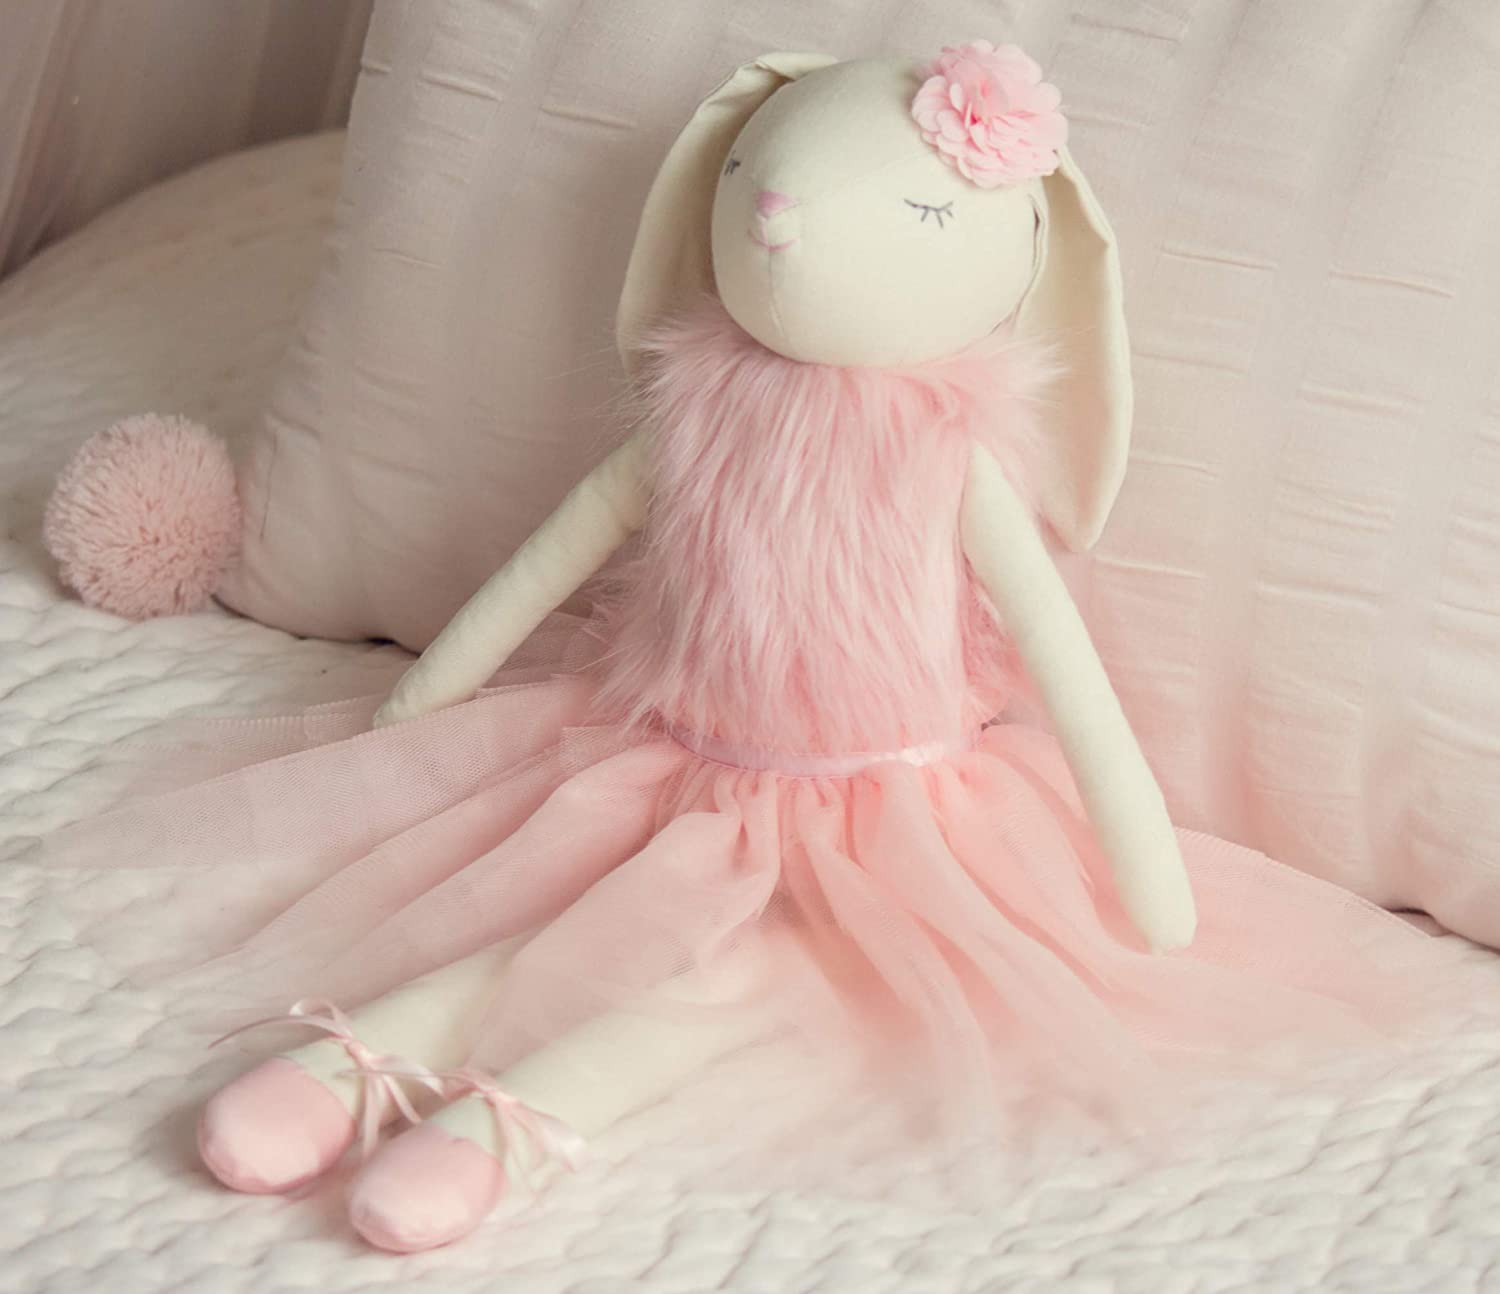 Inspired by Jewel - Lilly The Bunny | Beautiful Cream Cotton Linen Plush Doll with Floppy Ears, Arms & Legs | Authentic Pink Ballerina Tutu, Slippers & Cuddly Fur Top | Soothing Hand Stitched Face